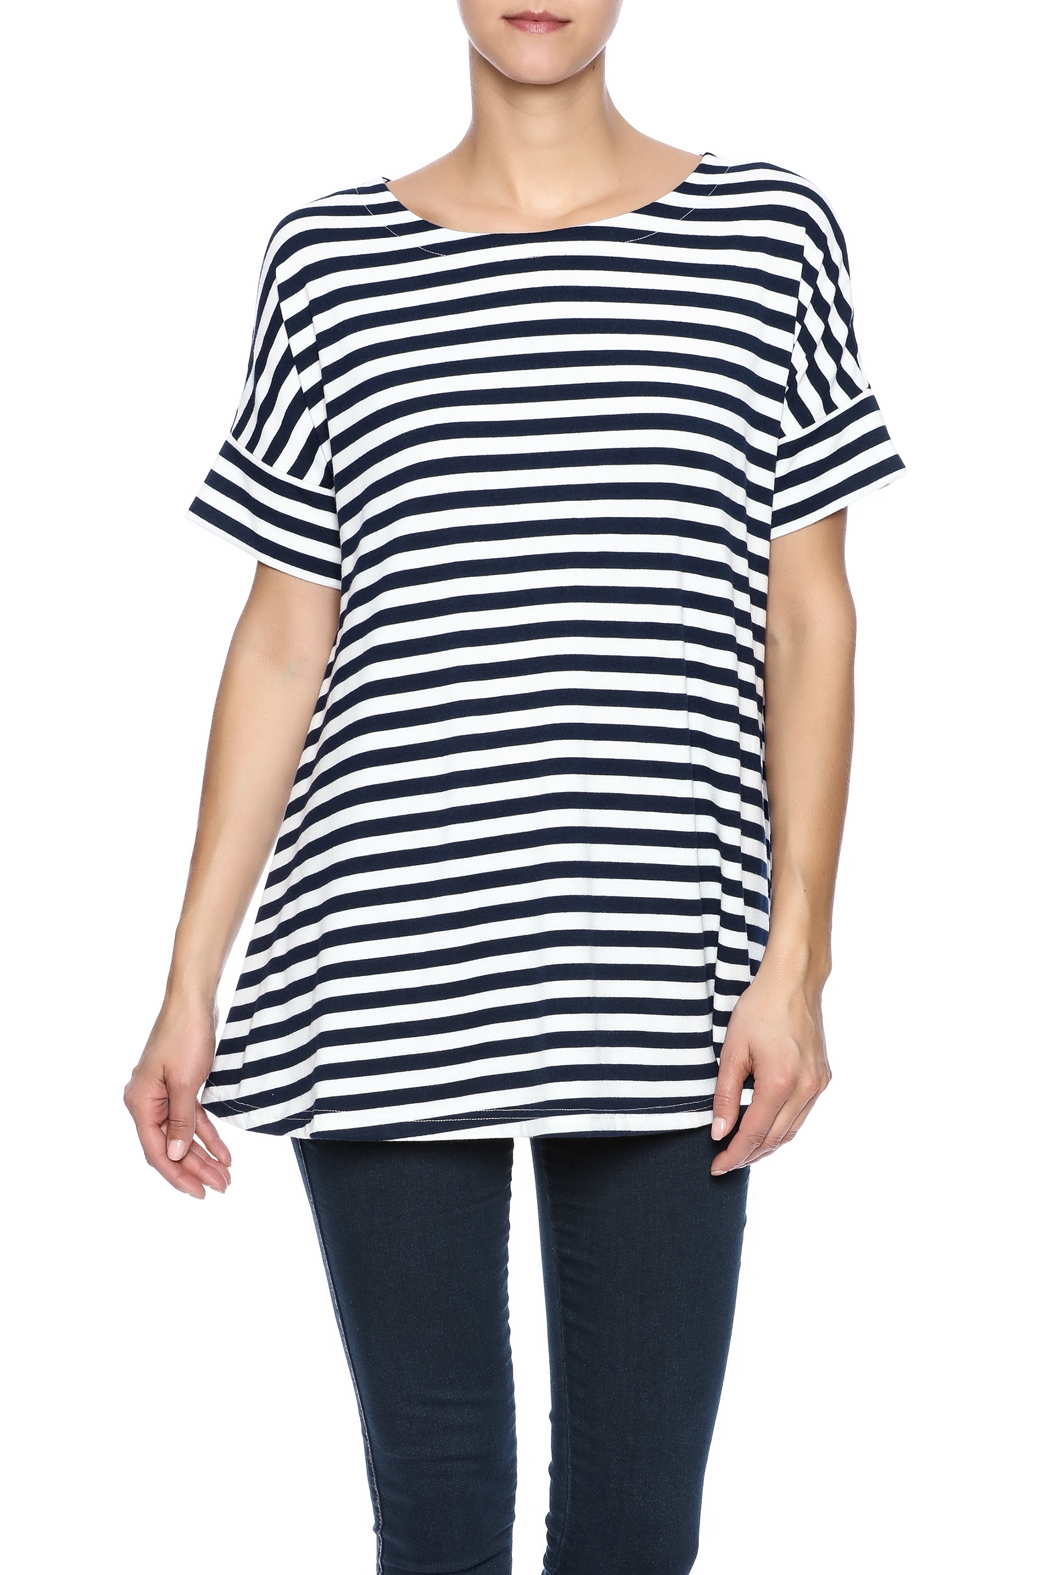 Simply Noelle Nautical Striped Tunic - Main Image